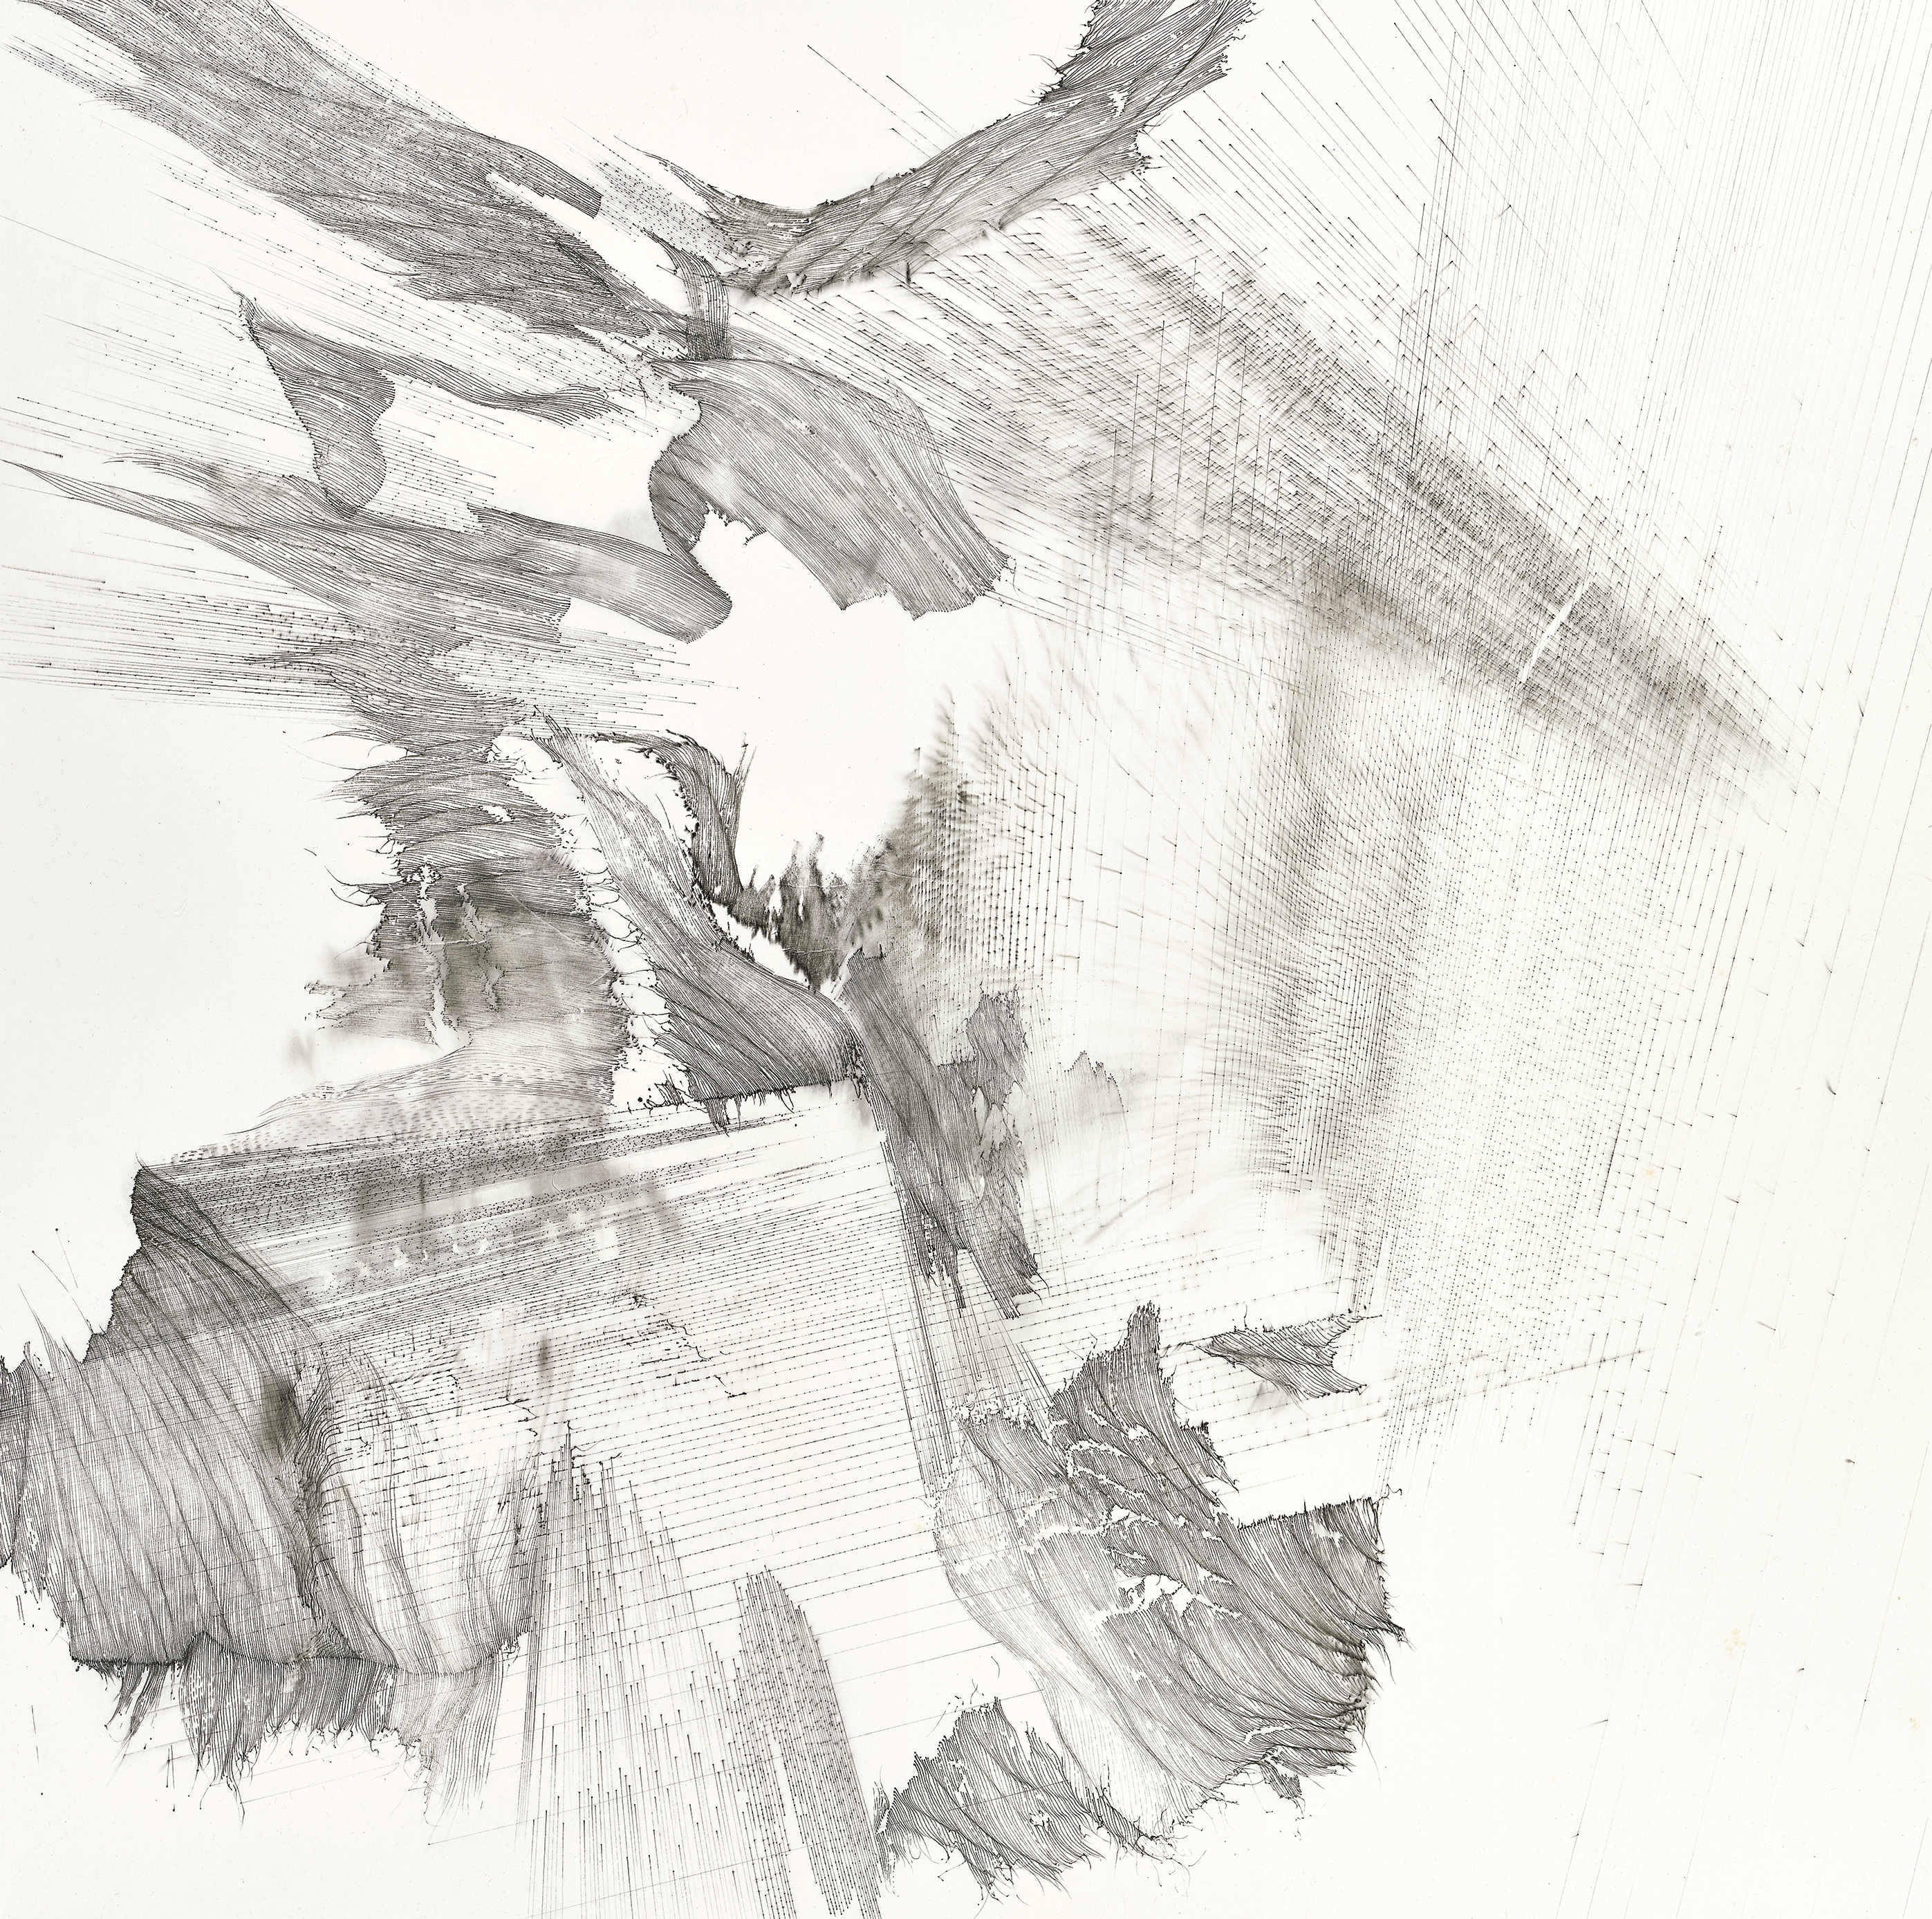 Hung Fai and Wai Pong Yu, Same Line Twice 3, 96.5 cm (width) x 96.5 cm (height), pigmented ink on paper, 2016